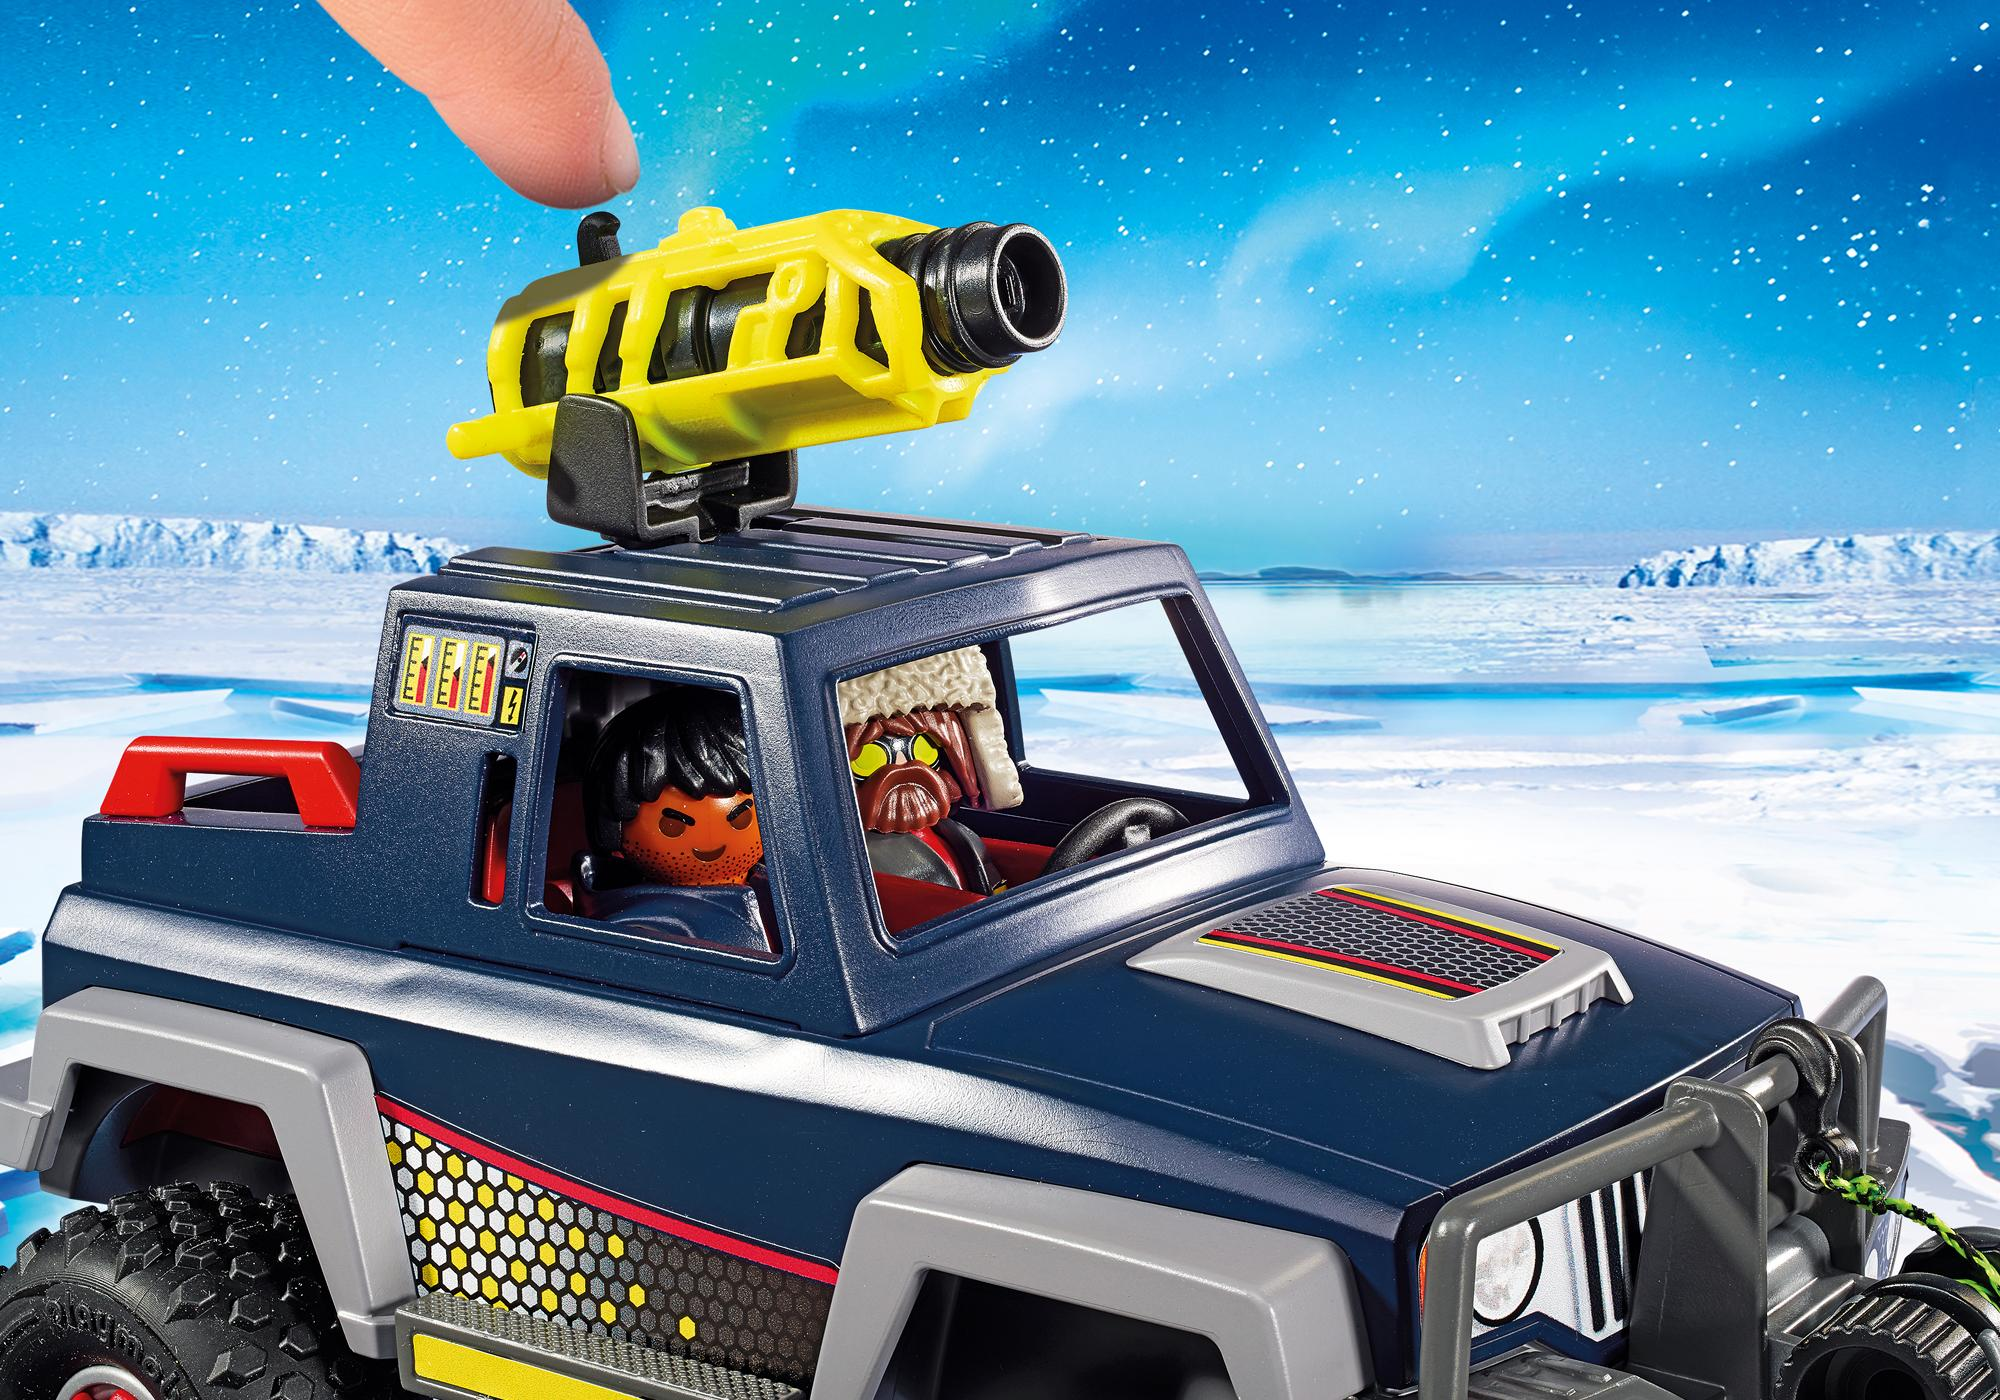 http://media.playmobil.com/i/playmobil/9059_product_extra1/Ice Pirates with Snow Truck